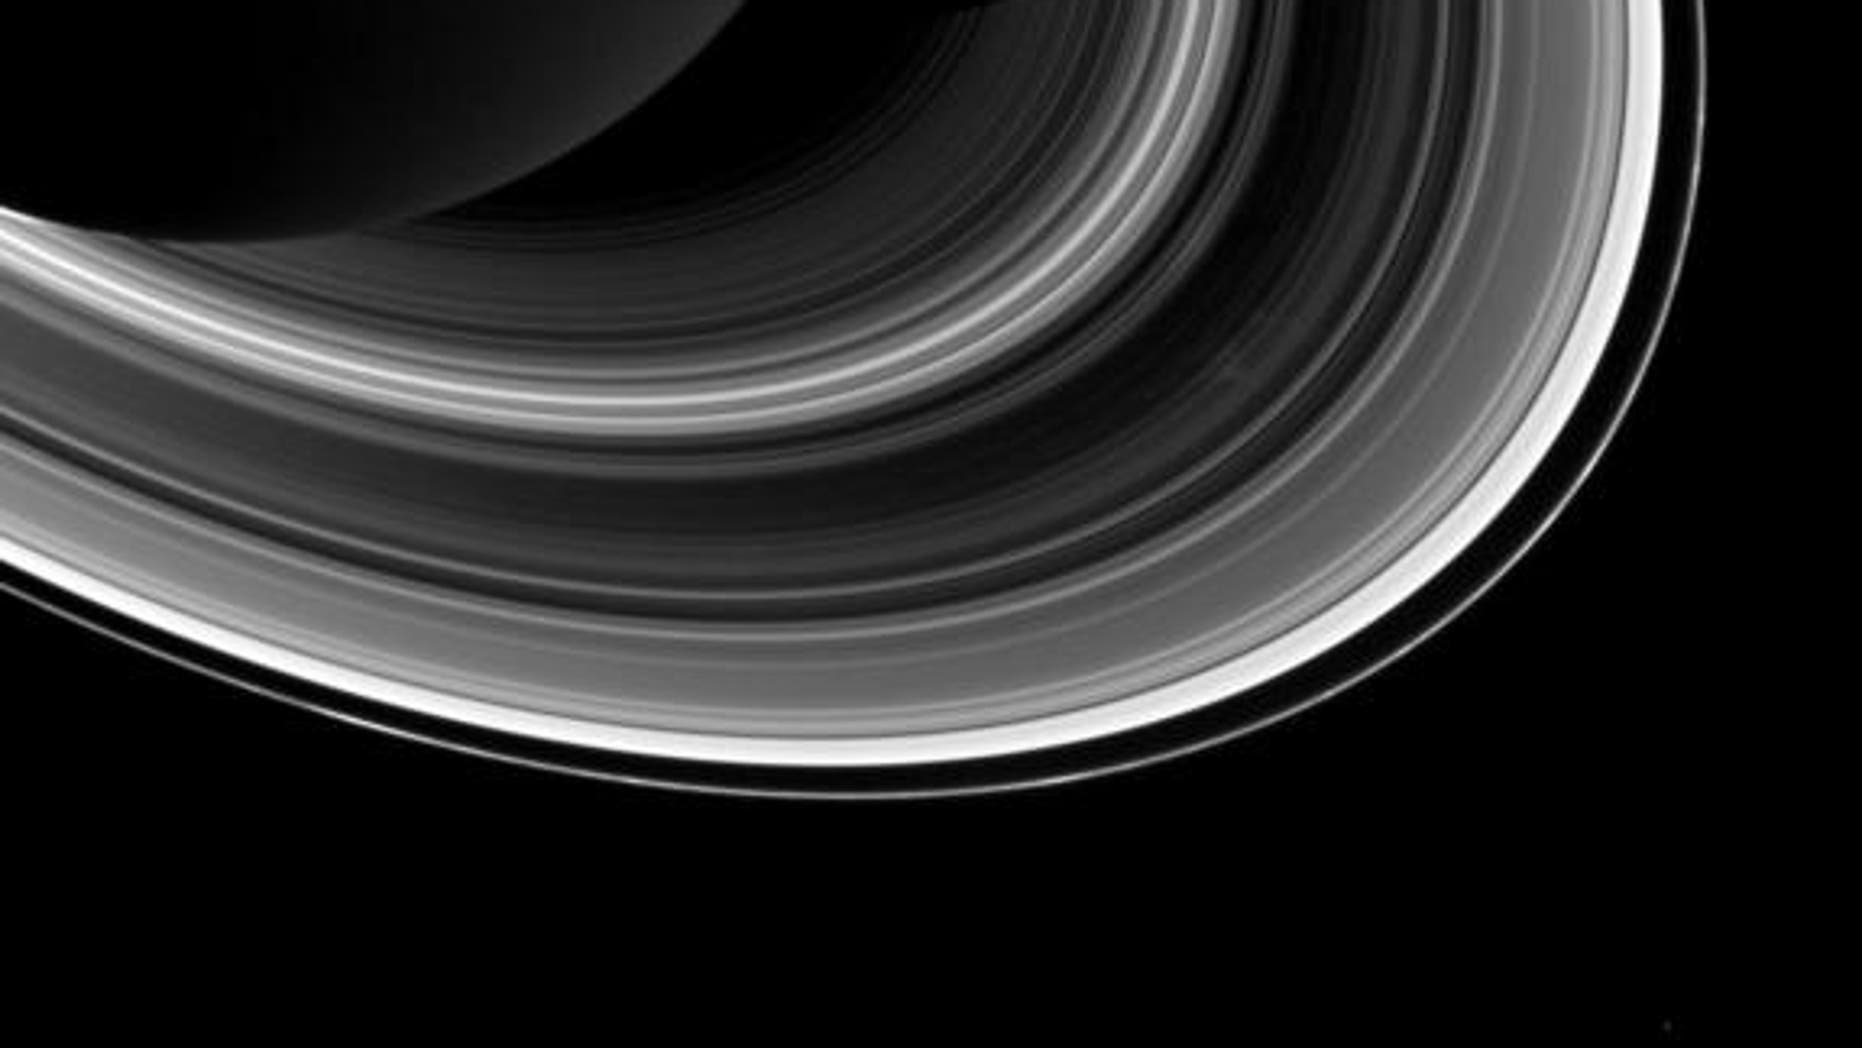 Among the interplay of Saturn's shadow and rings, Mimas, which appears in the lower-right corner of the image, orbits Saturn as a set of the ever-intriguing spokes appear in the B ring.